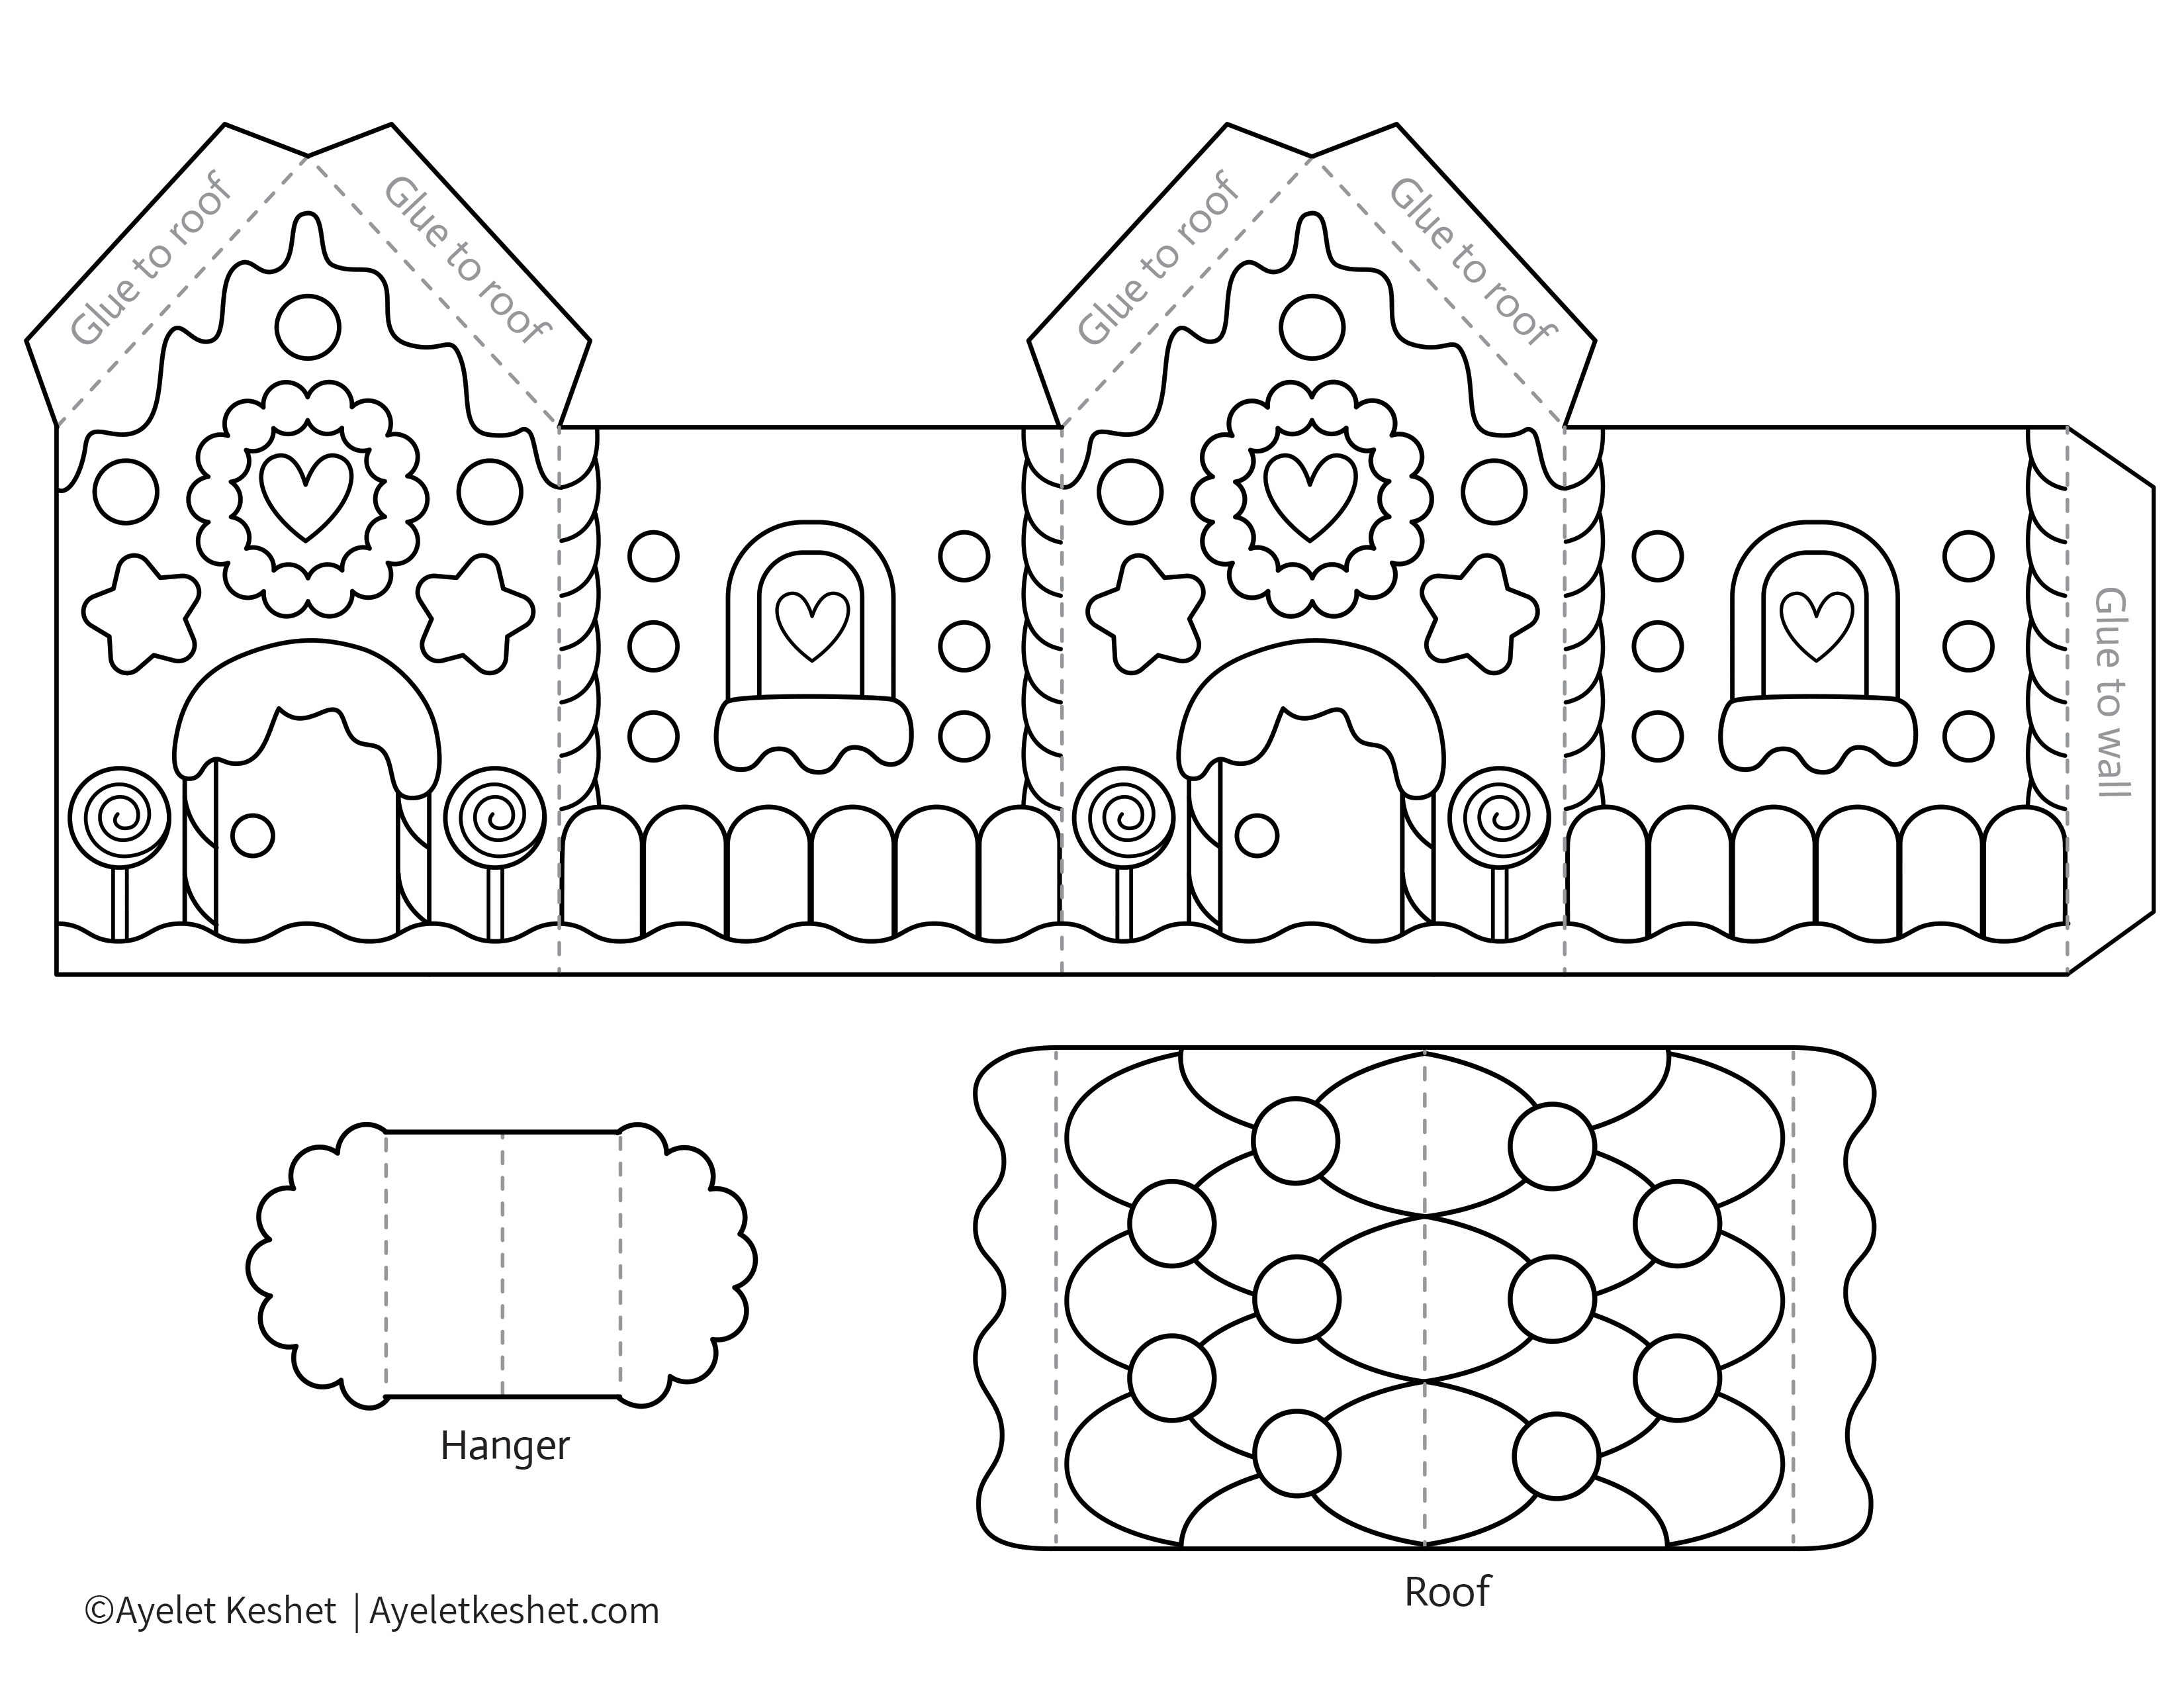 Printable Gingerbread House Template To Color - Ayelet Keshet - Gingerbread Template Free Printable